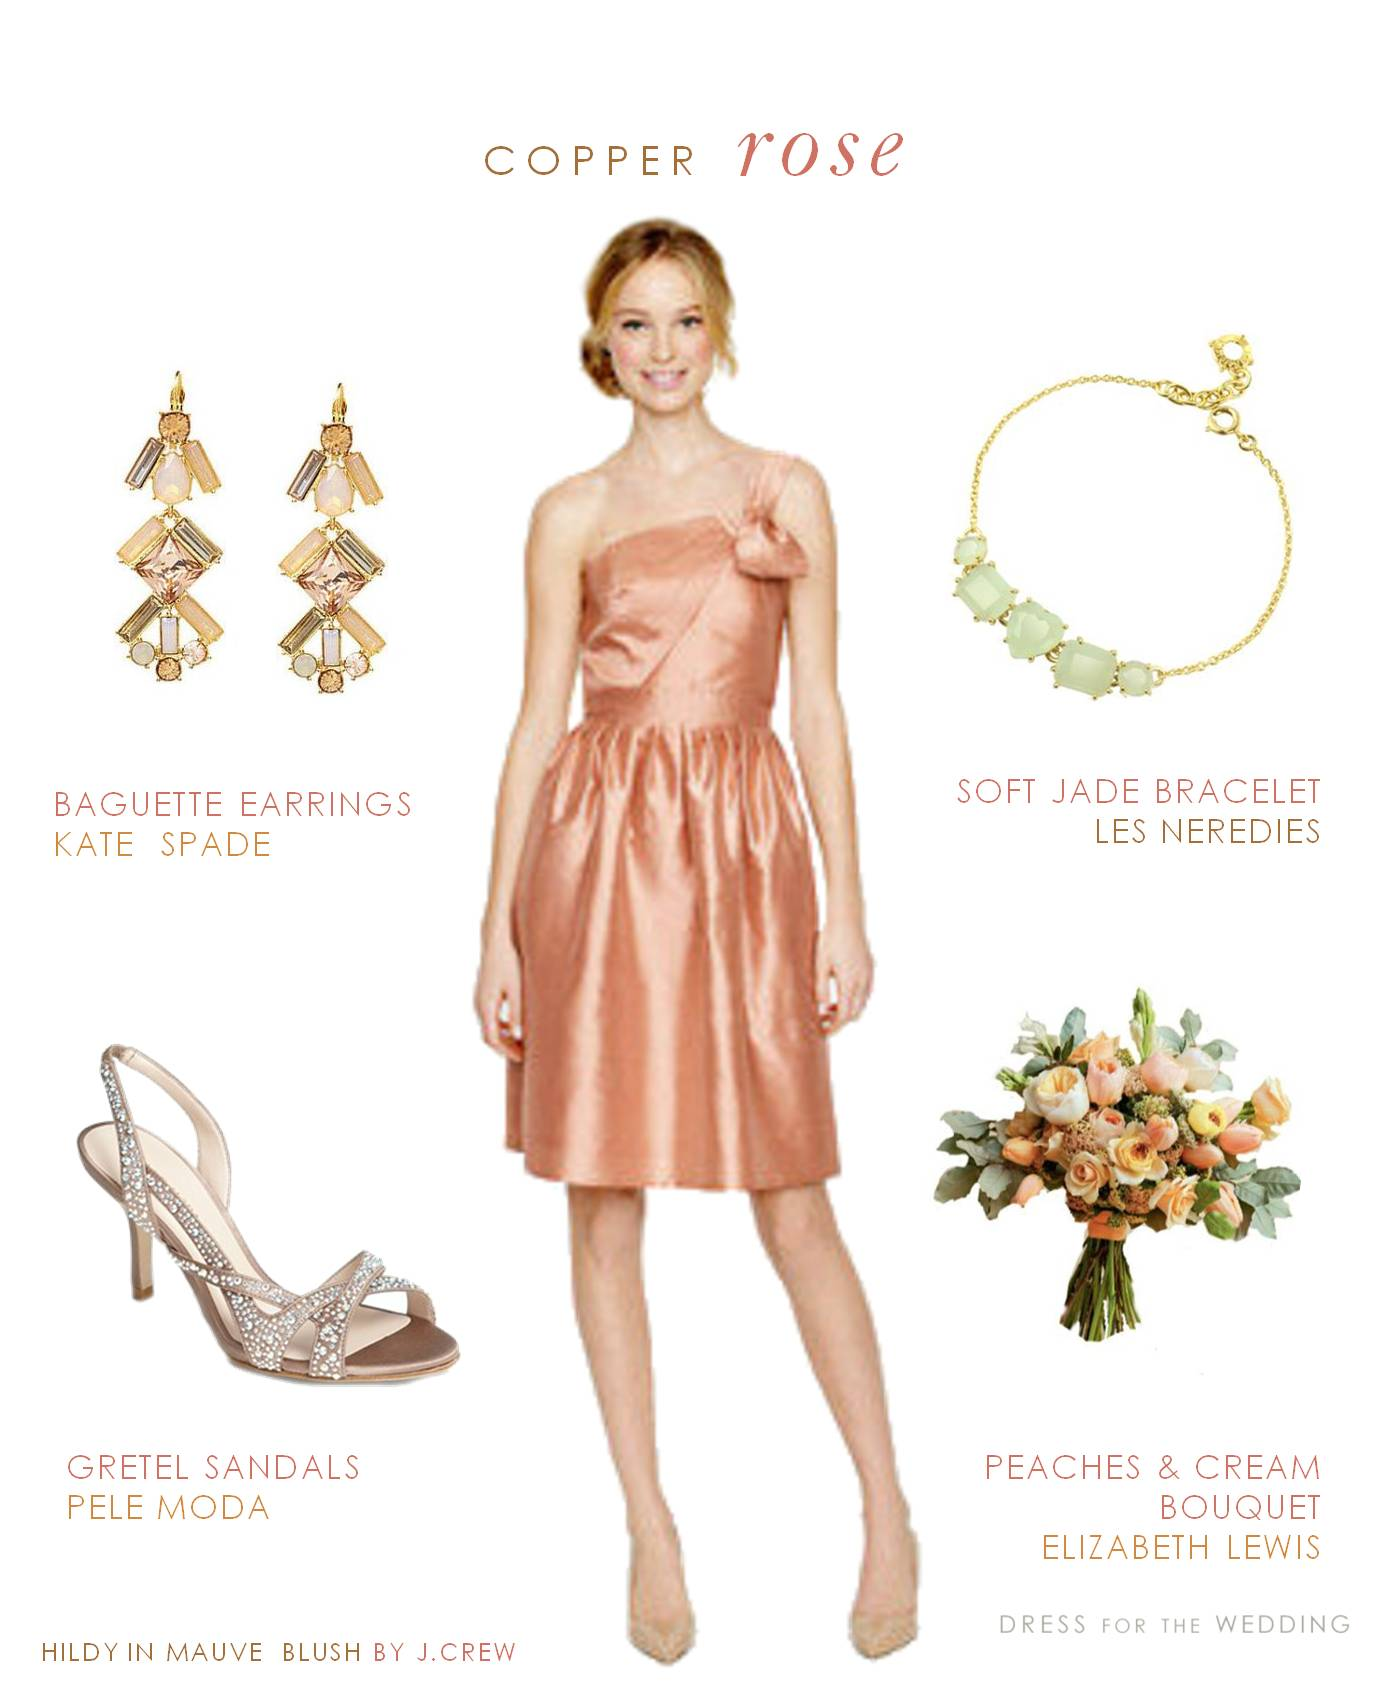 Rose Gold Bridesmaid Dress, Hildy by J.Crew Mauve Blush